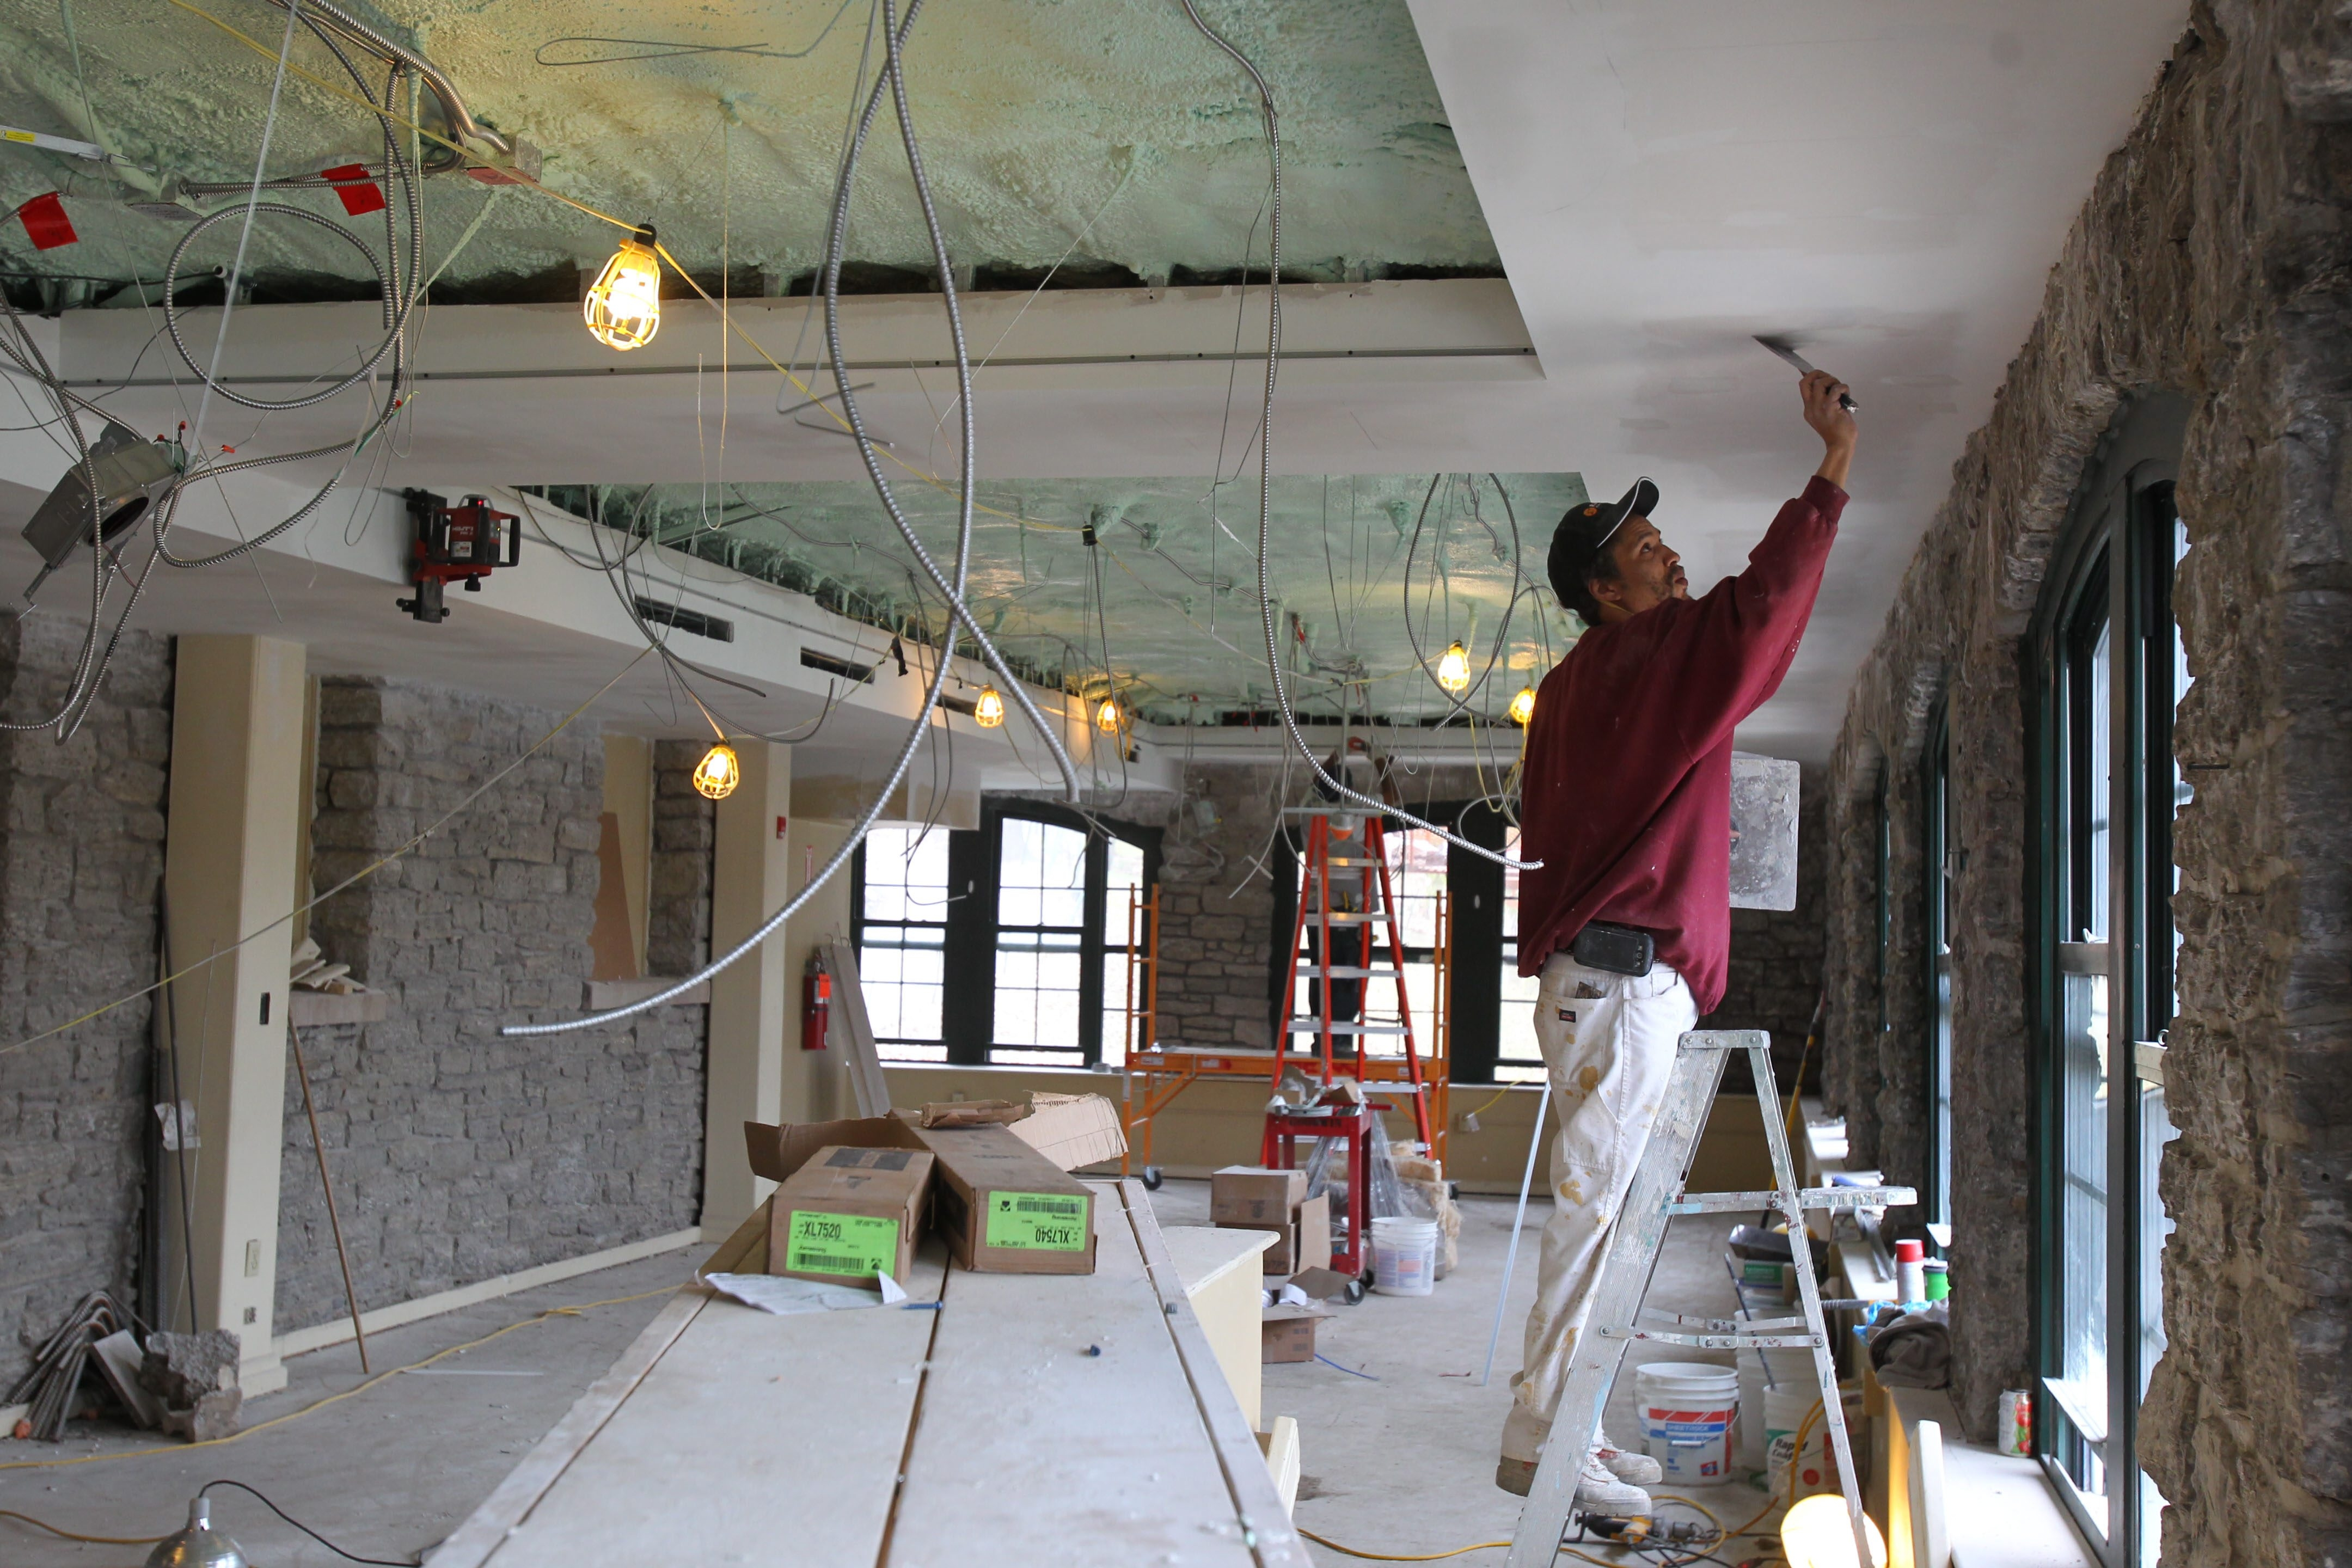 Tyrone Worthy of OCM Construction finishes some drywall as part of the improvements at Marcy Casino in Delaware Park on Friday. See a photo gallery at BuffaloNews.com.